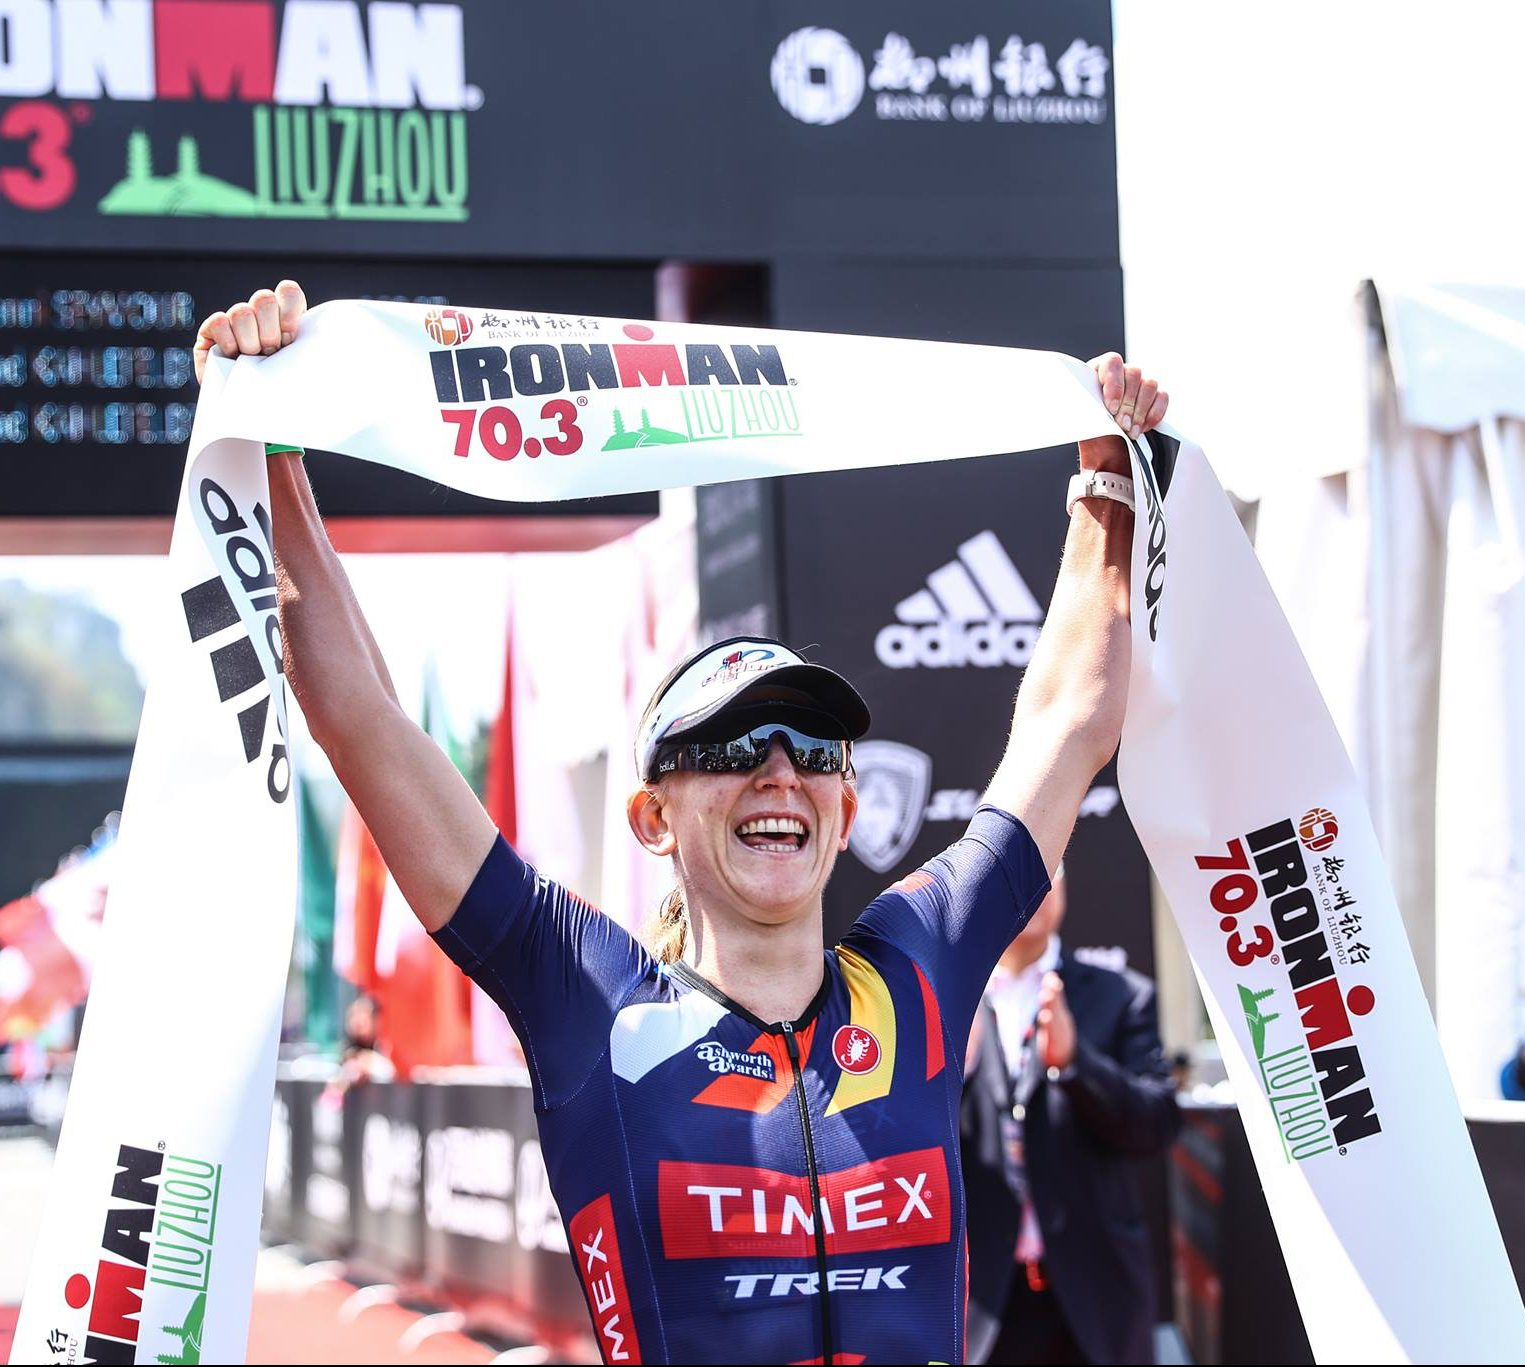 Seymour & Don Win IRONMAN 70.3 Liuzhou